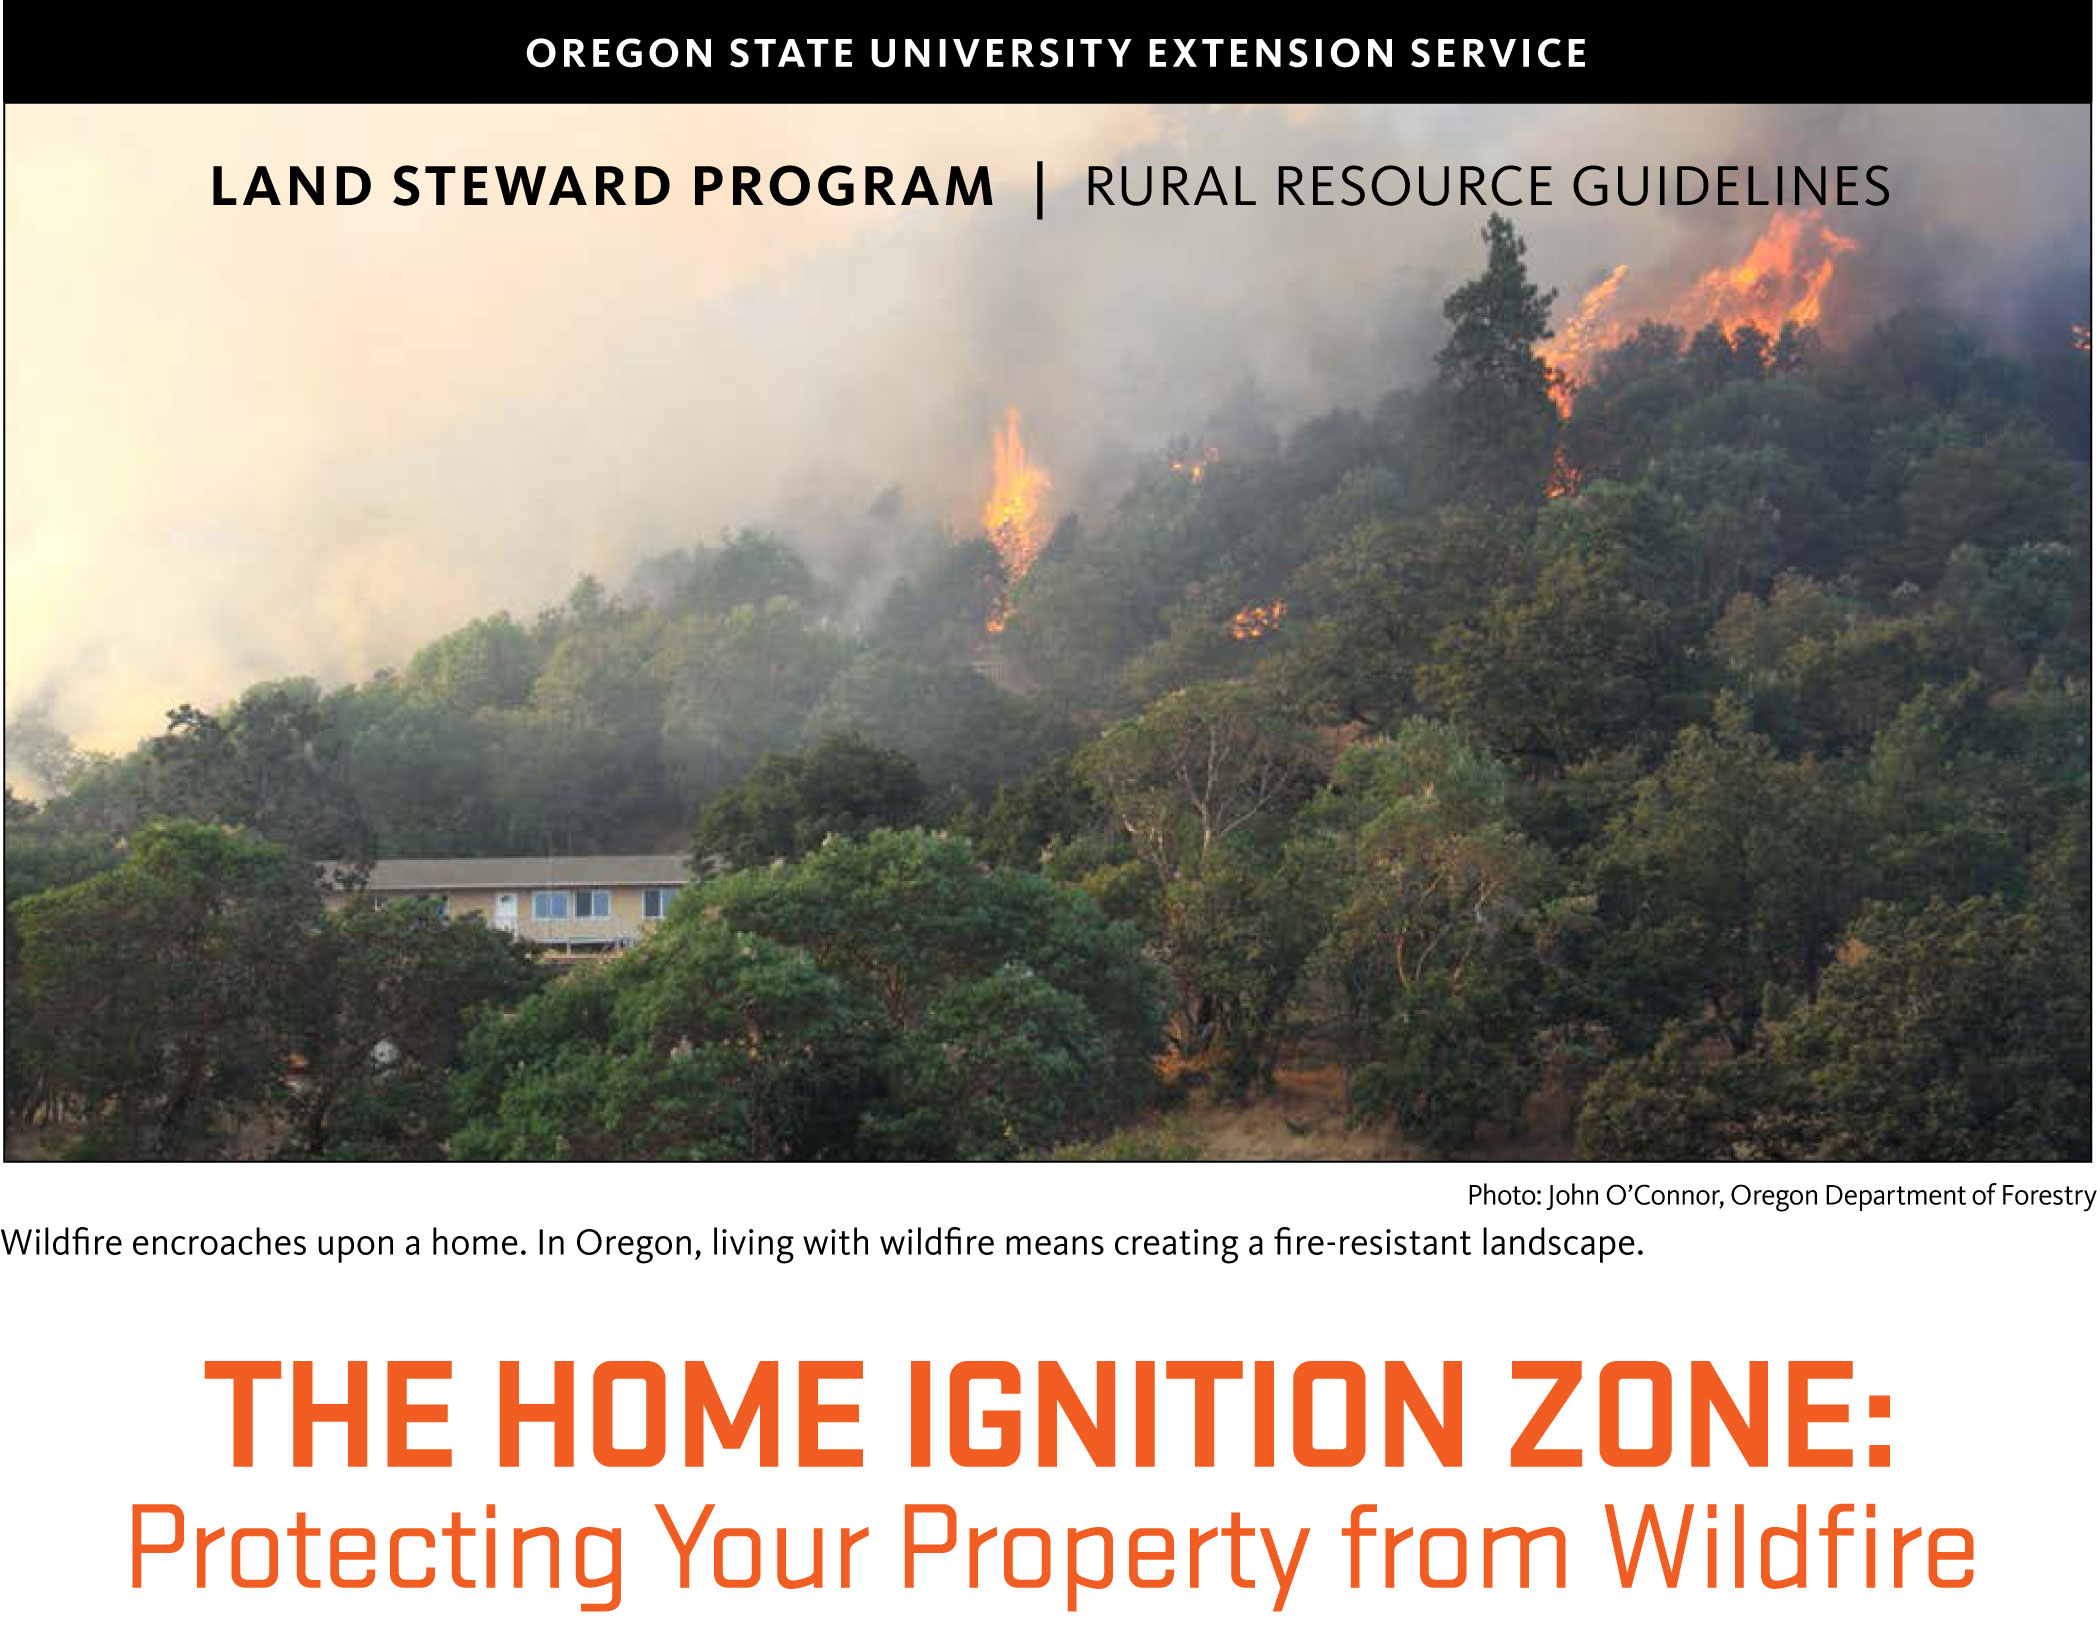 The Home Ignition Zone: Protecting Your Property from Wildfire